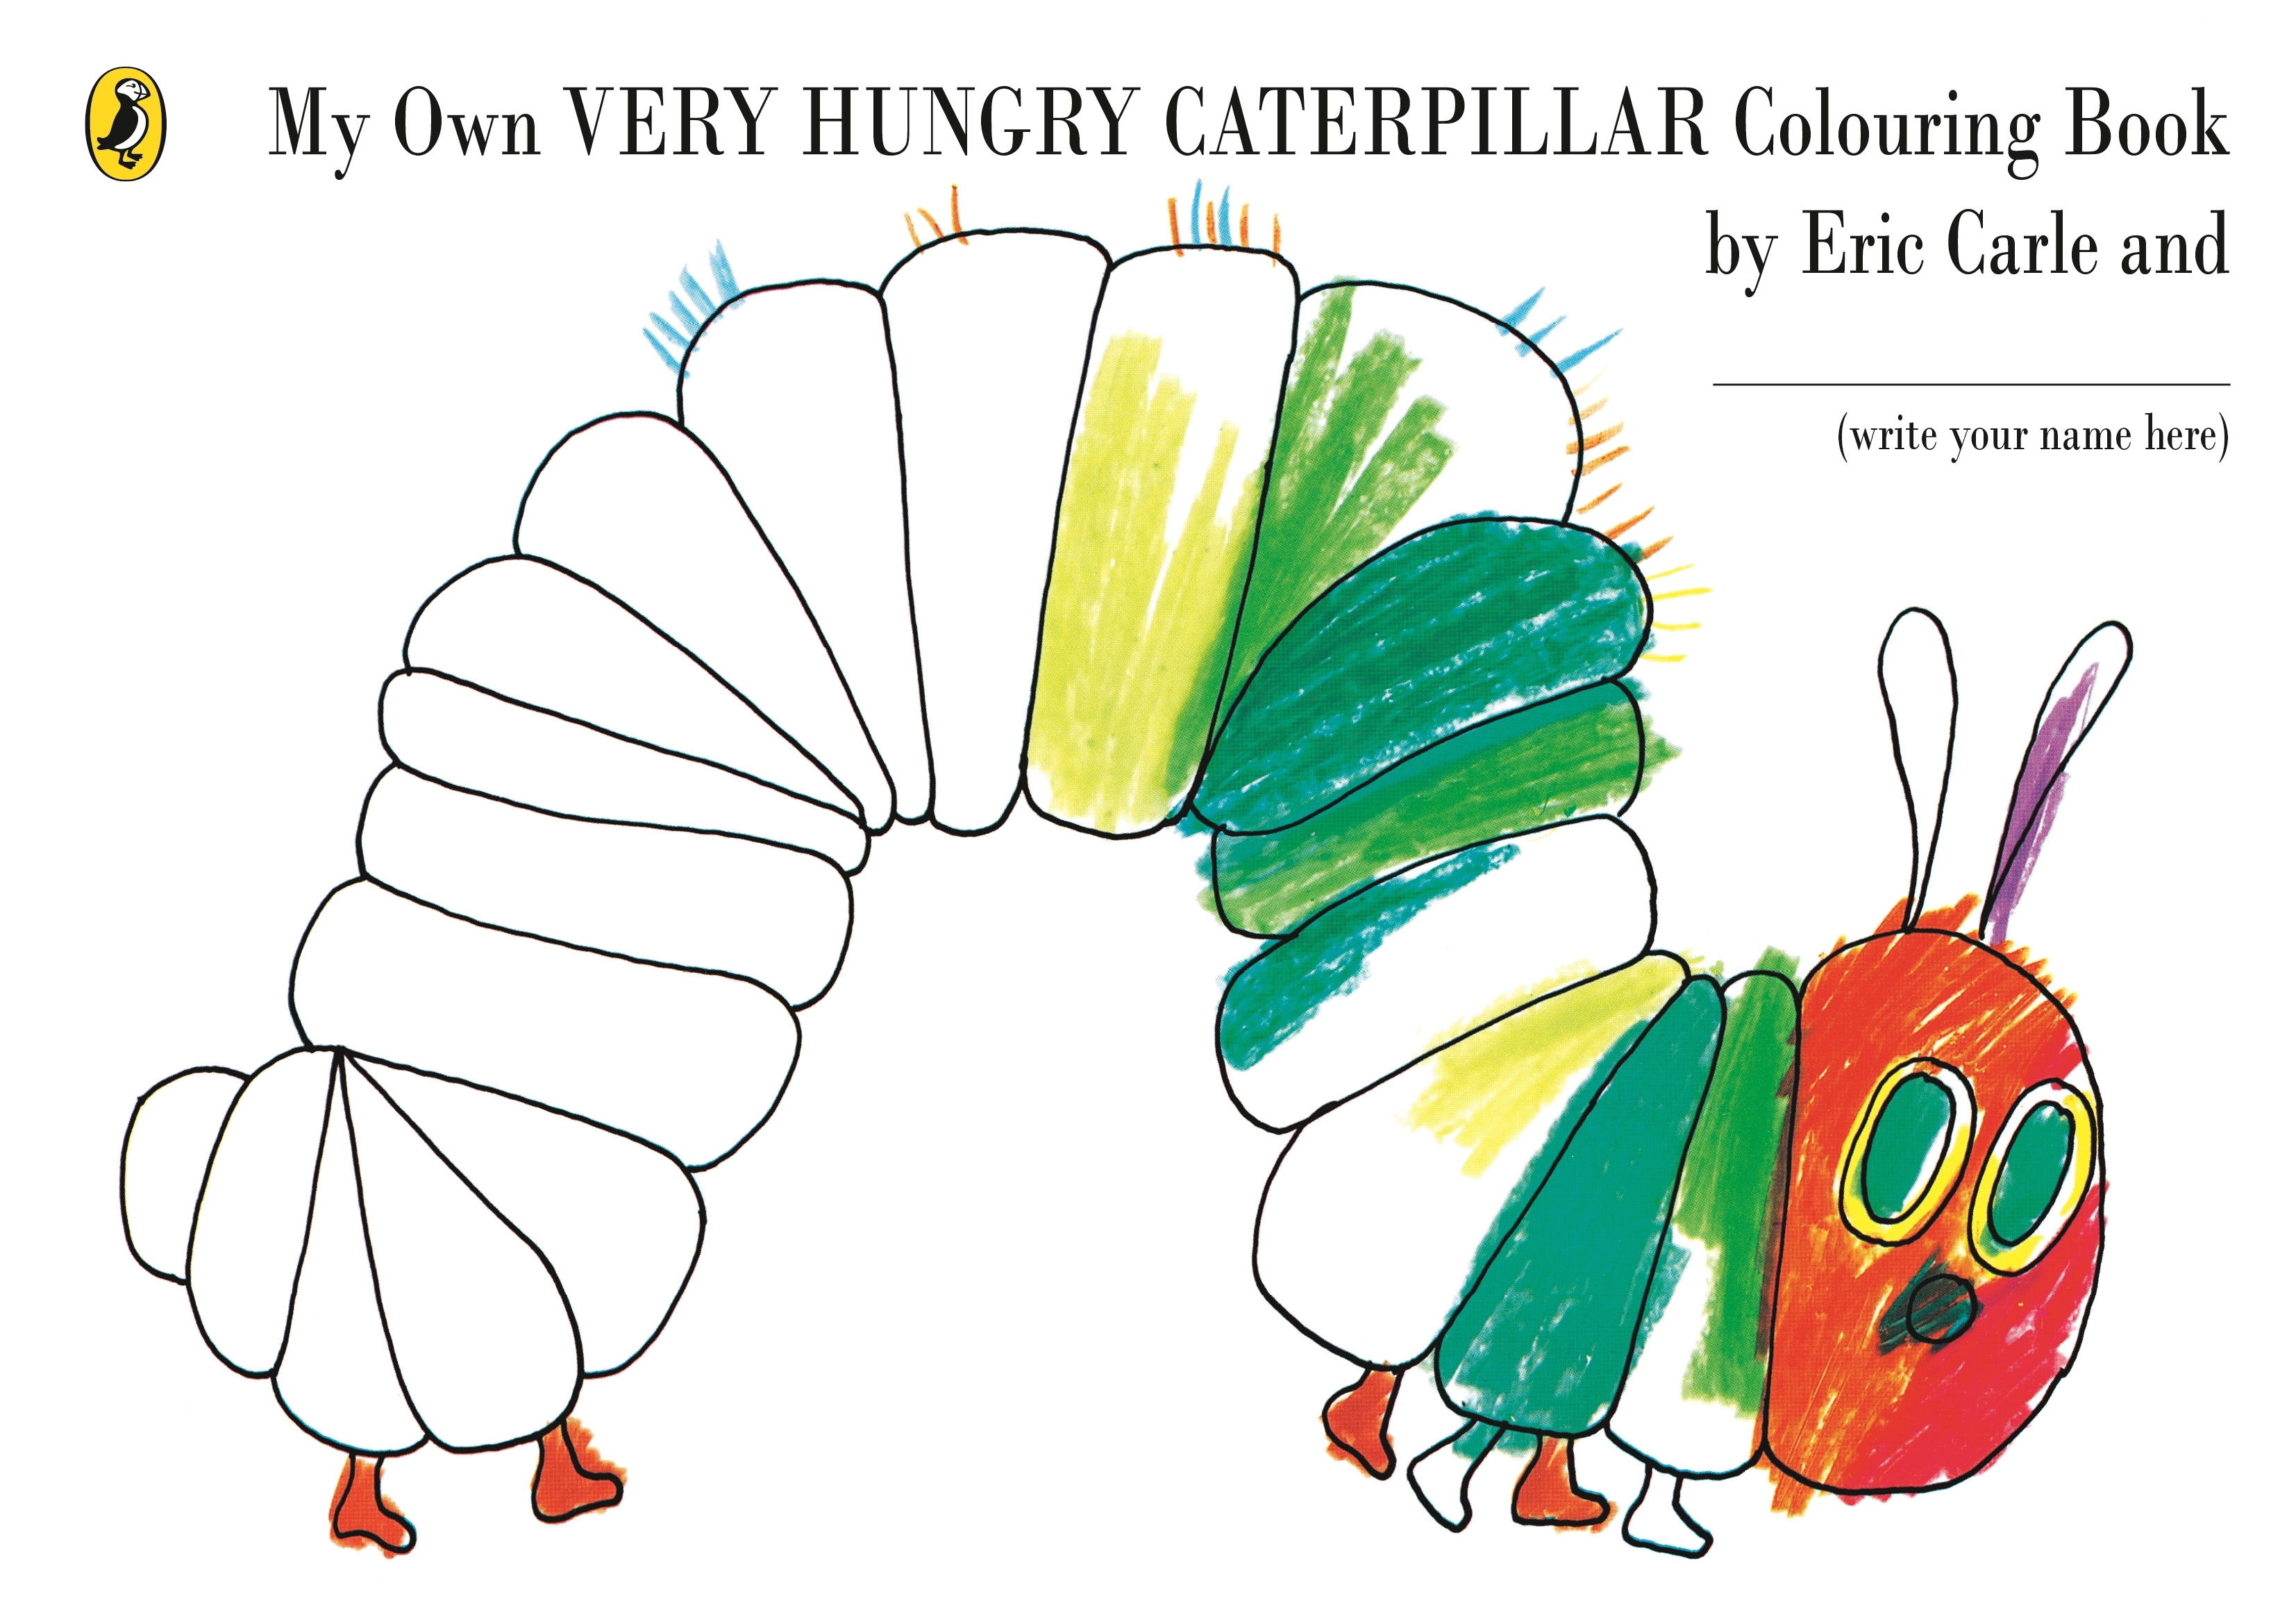 My own very hungry caterpillar colouring book penguin books